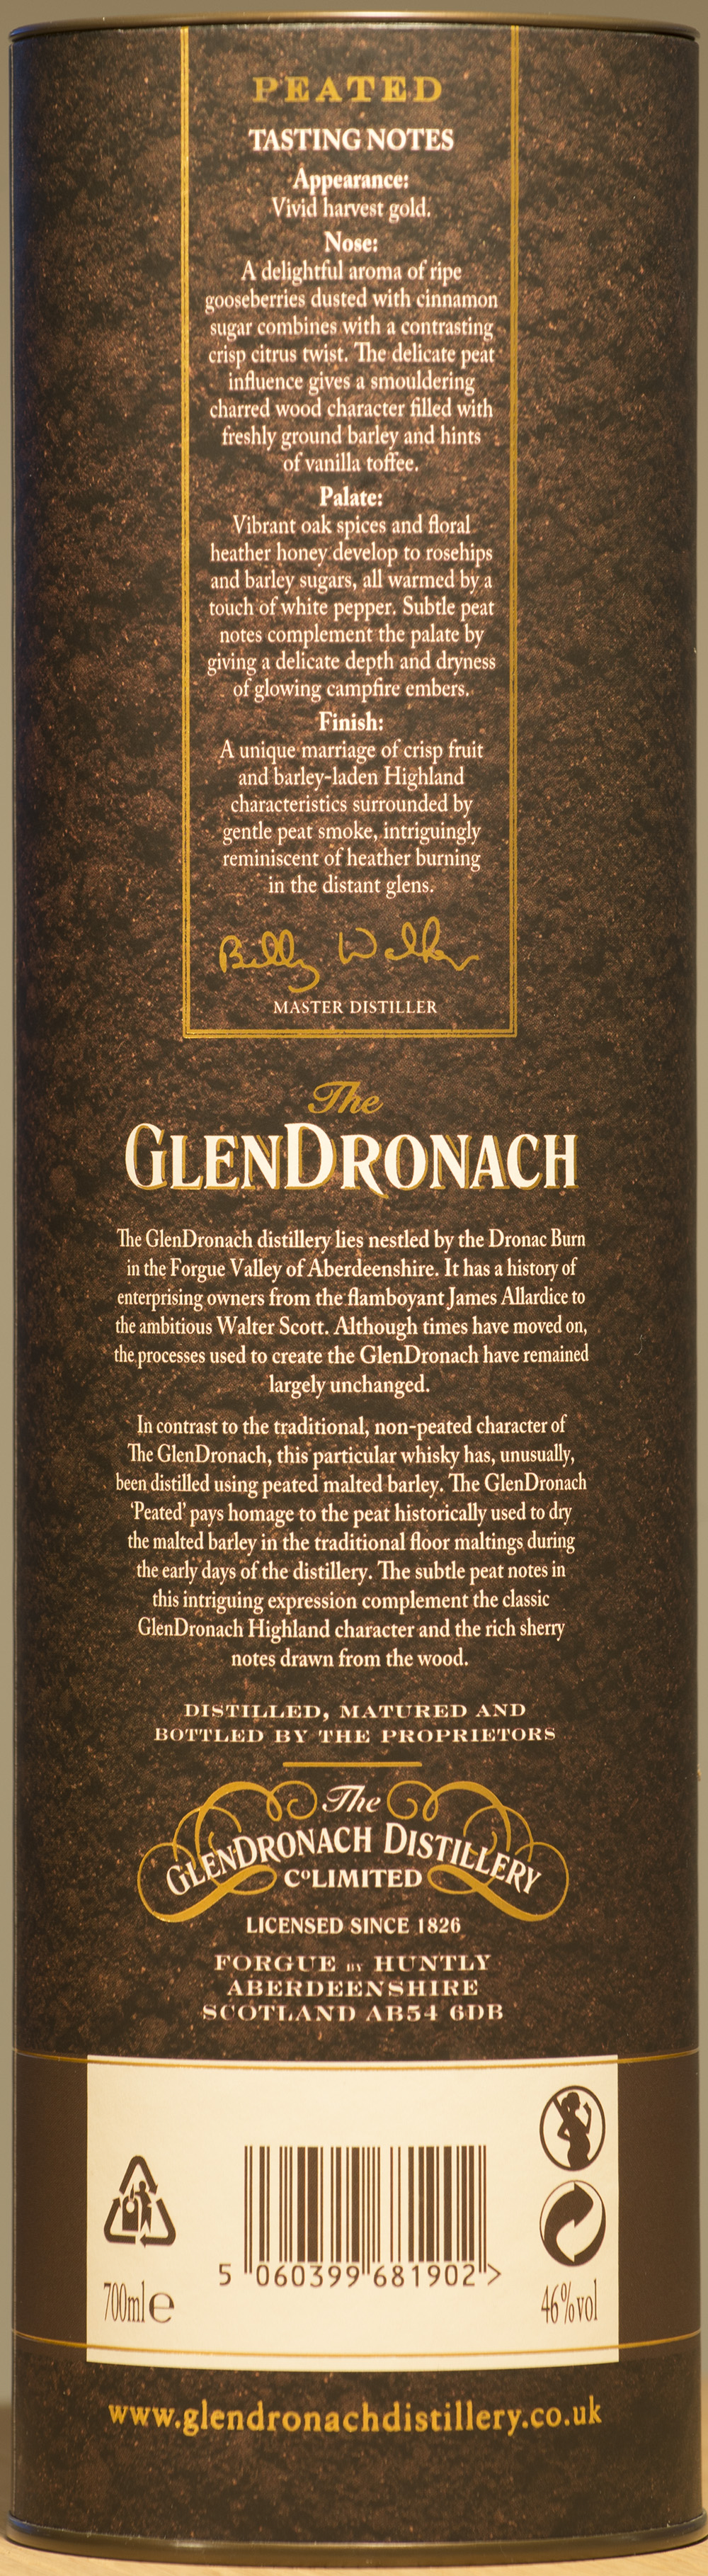 Billede: DSC_9078 - The GlenDronach Peated - tube back.jpg